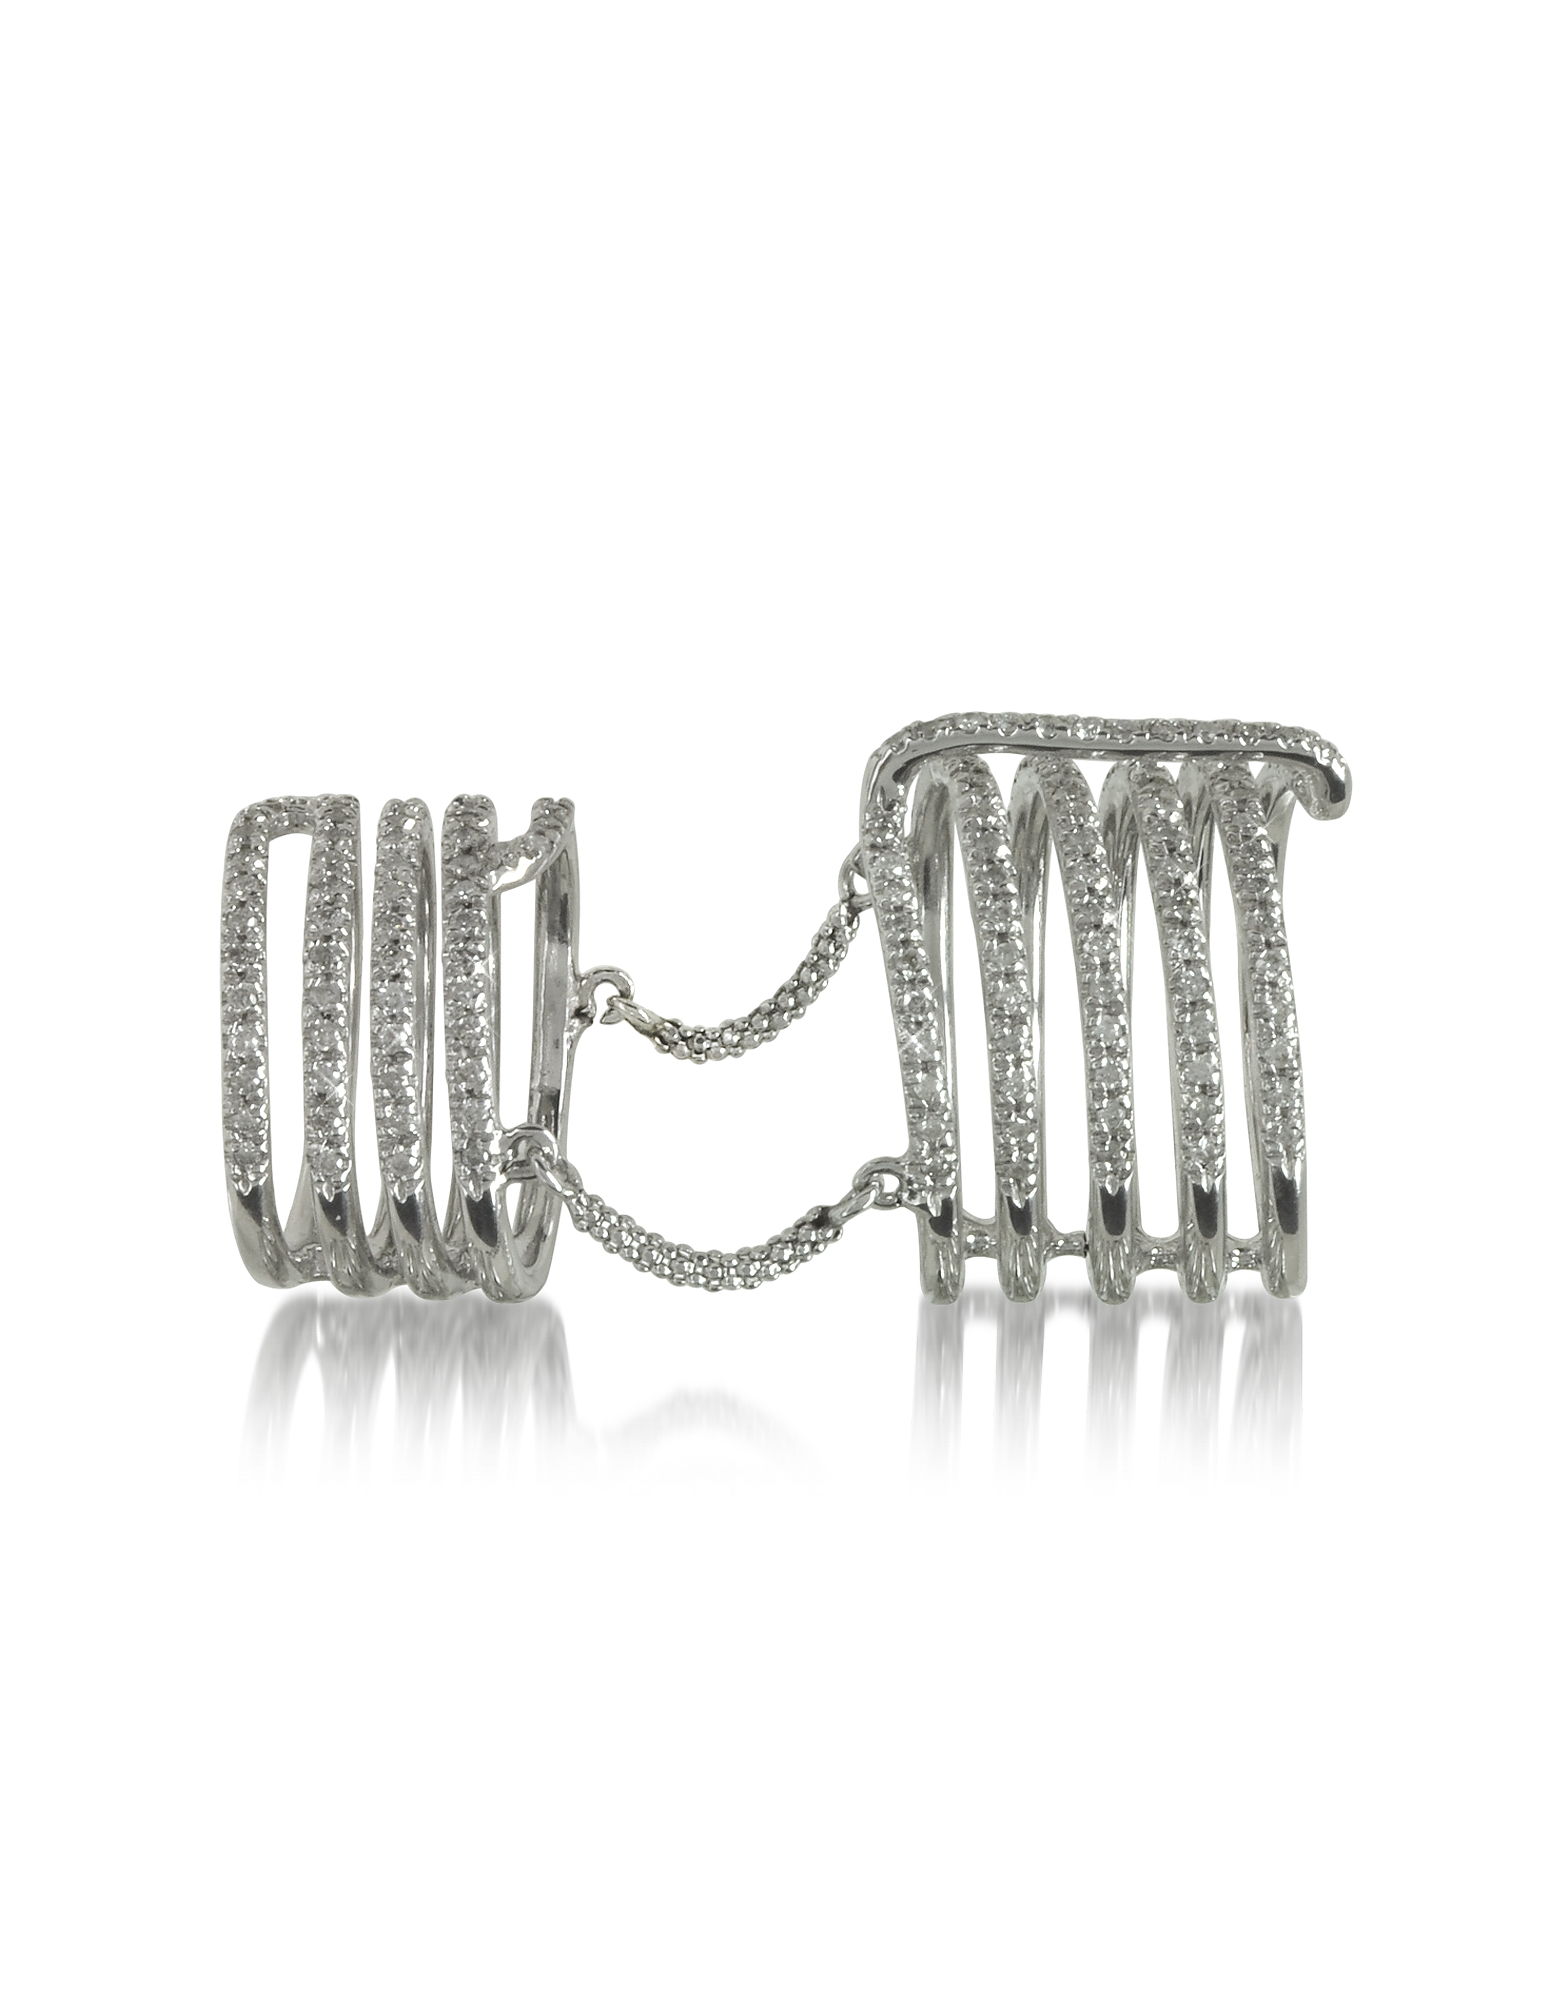 Bernard Delettrez Rings, Seven Bands White Gold Articulated Ring w/Diamonds Pave